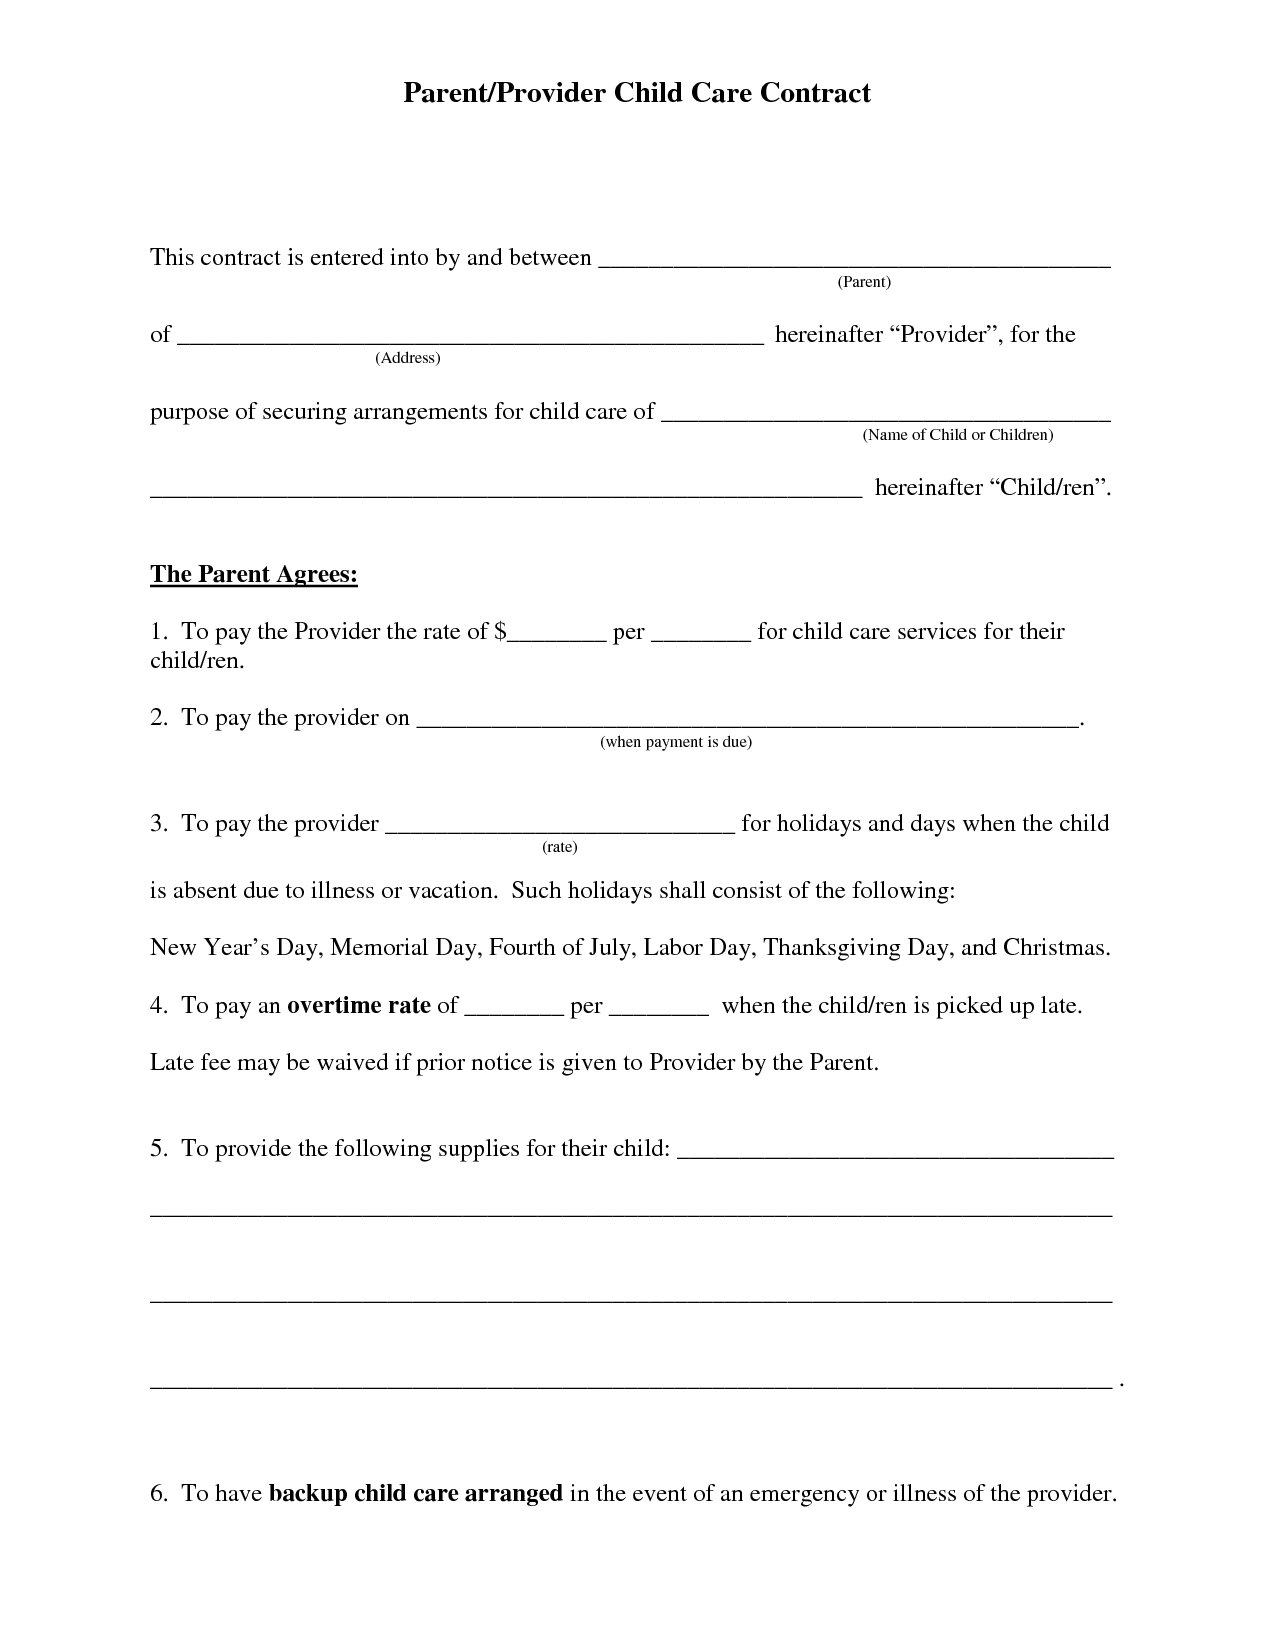 Free Daycare Contract Forms | Daycare Forms | Daycare Contract, Home - Free Printable Daycare Forms